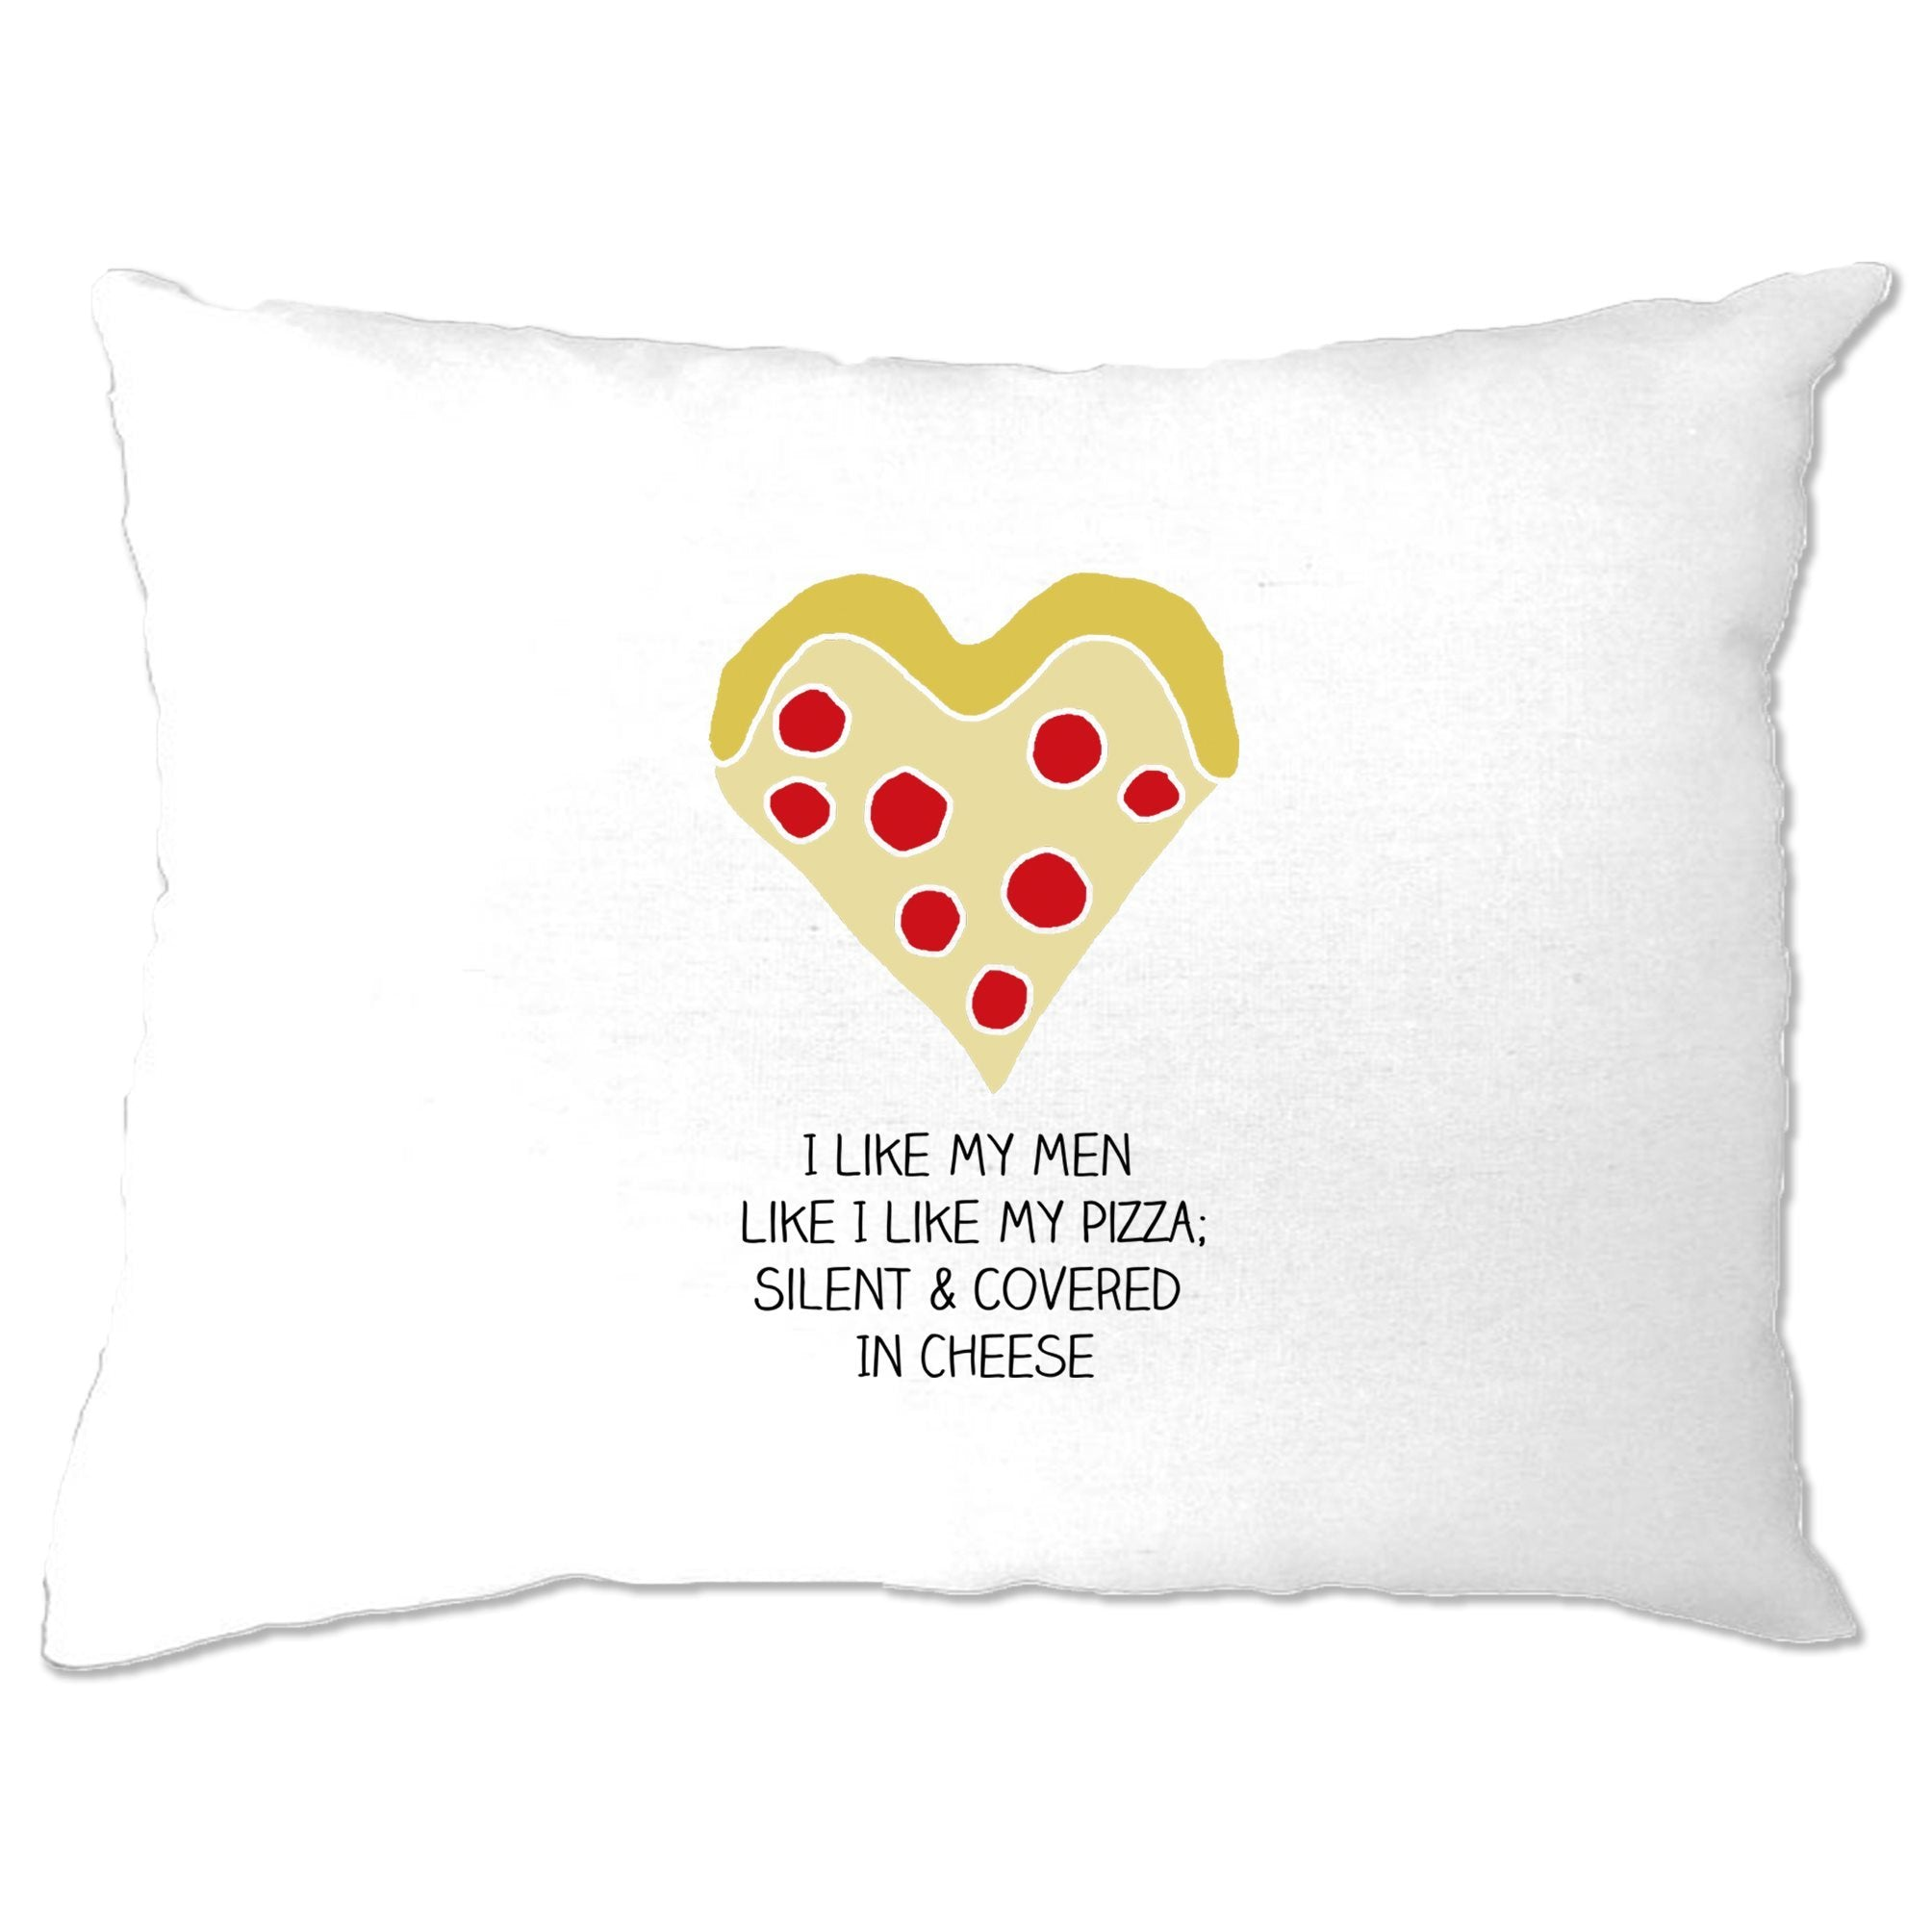 Novelty Pillow Case Like My Men Like I Like My Pizza Joke